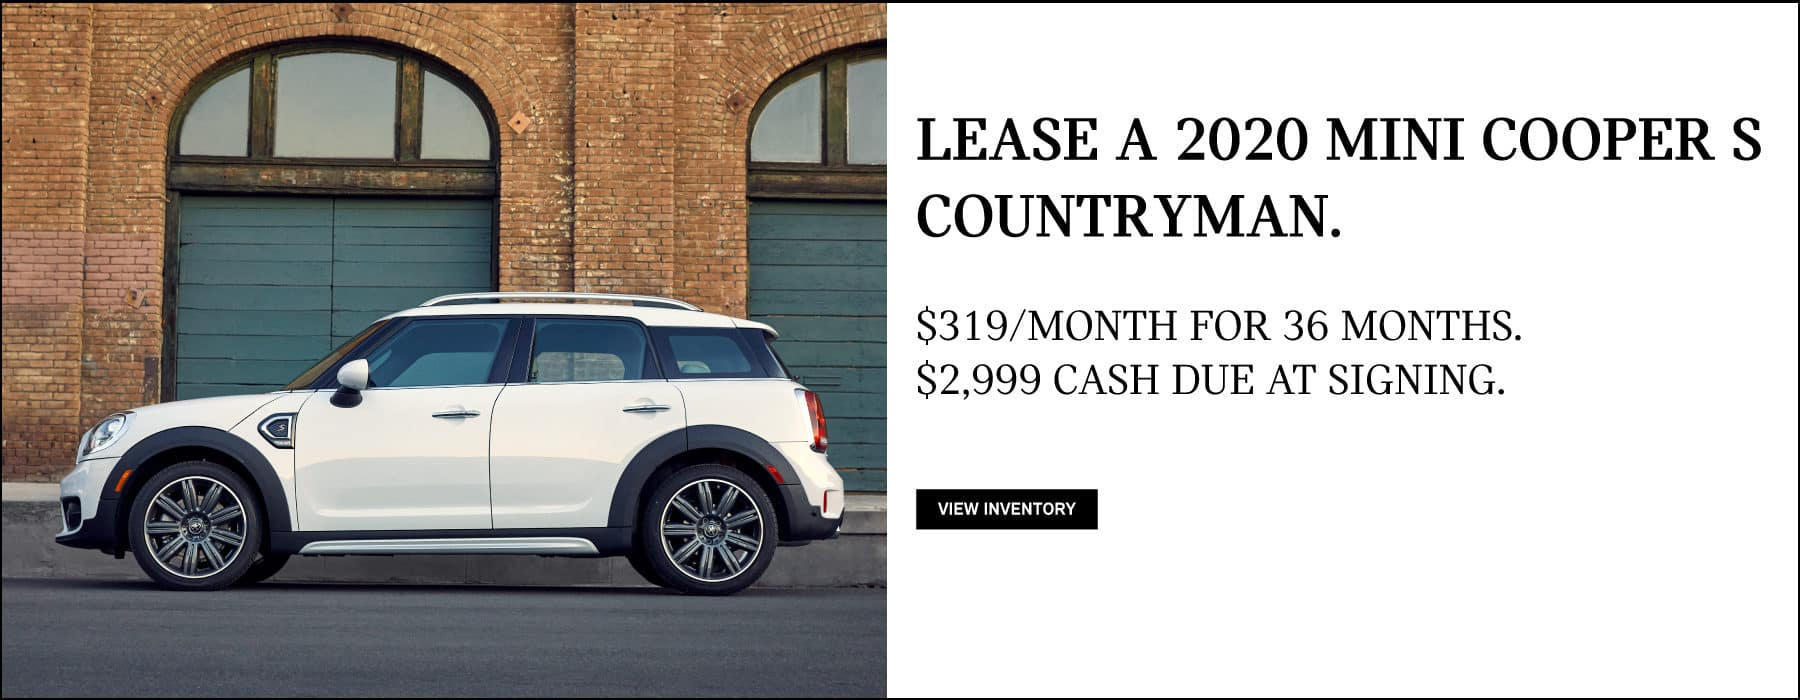 Lease a 2020 MINI Cooper S Countryman for $319/mo